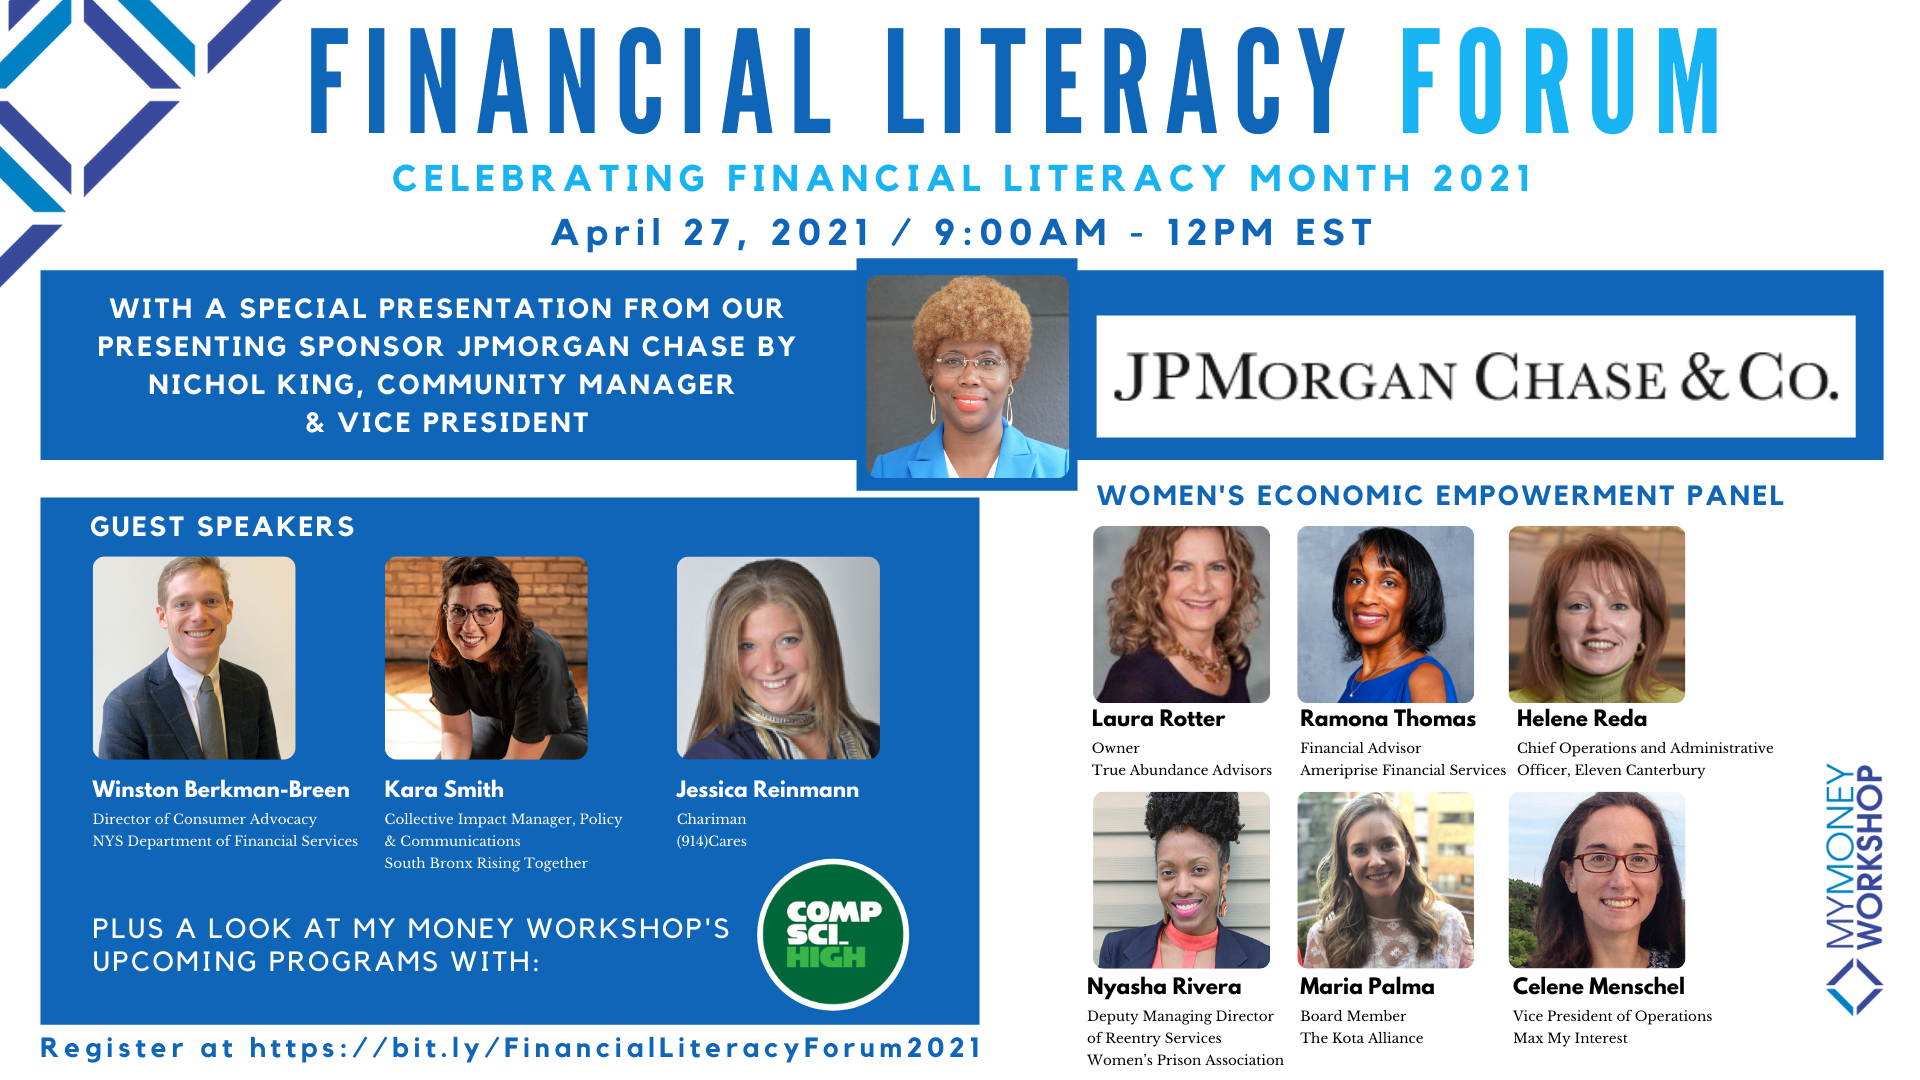 My Money Workshop Announces First-Ever Virtual Financial Literacy Forum Sponsored by JPMorgan Chase